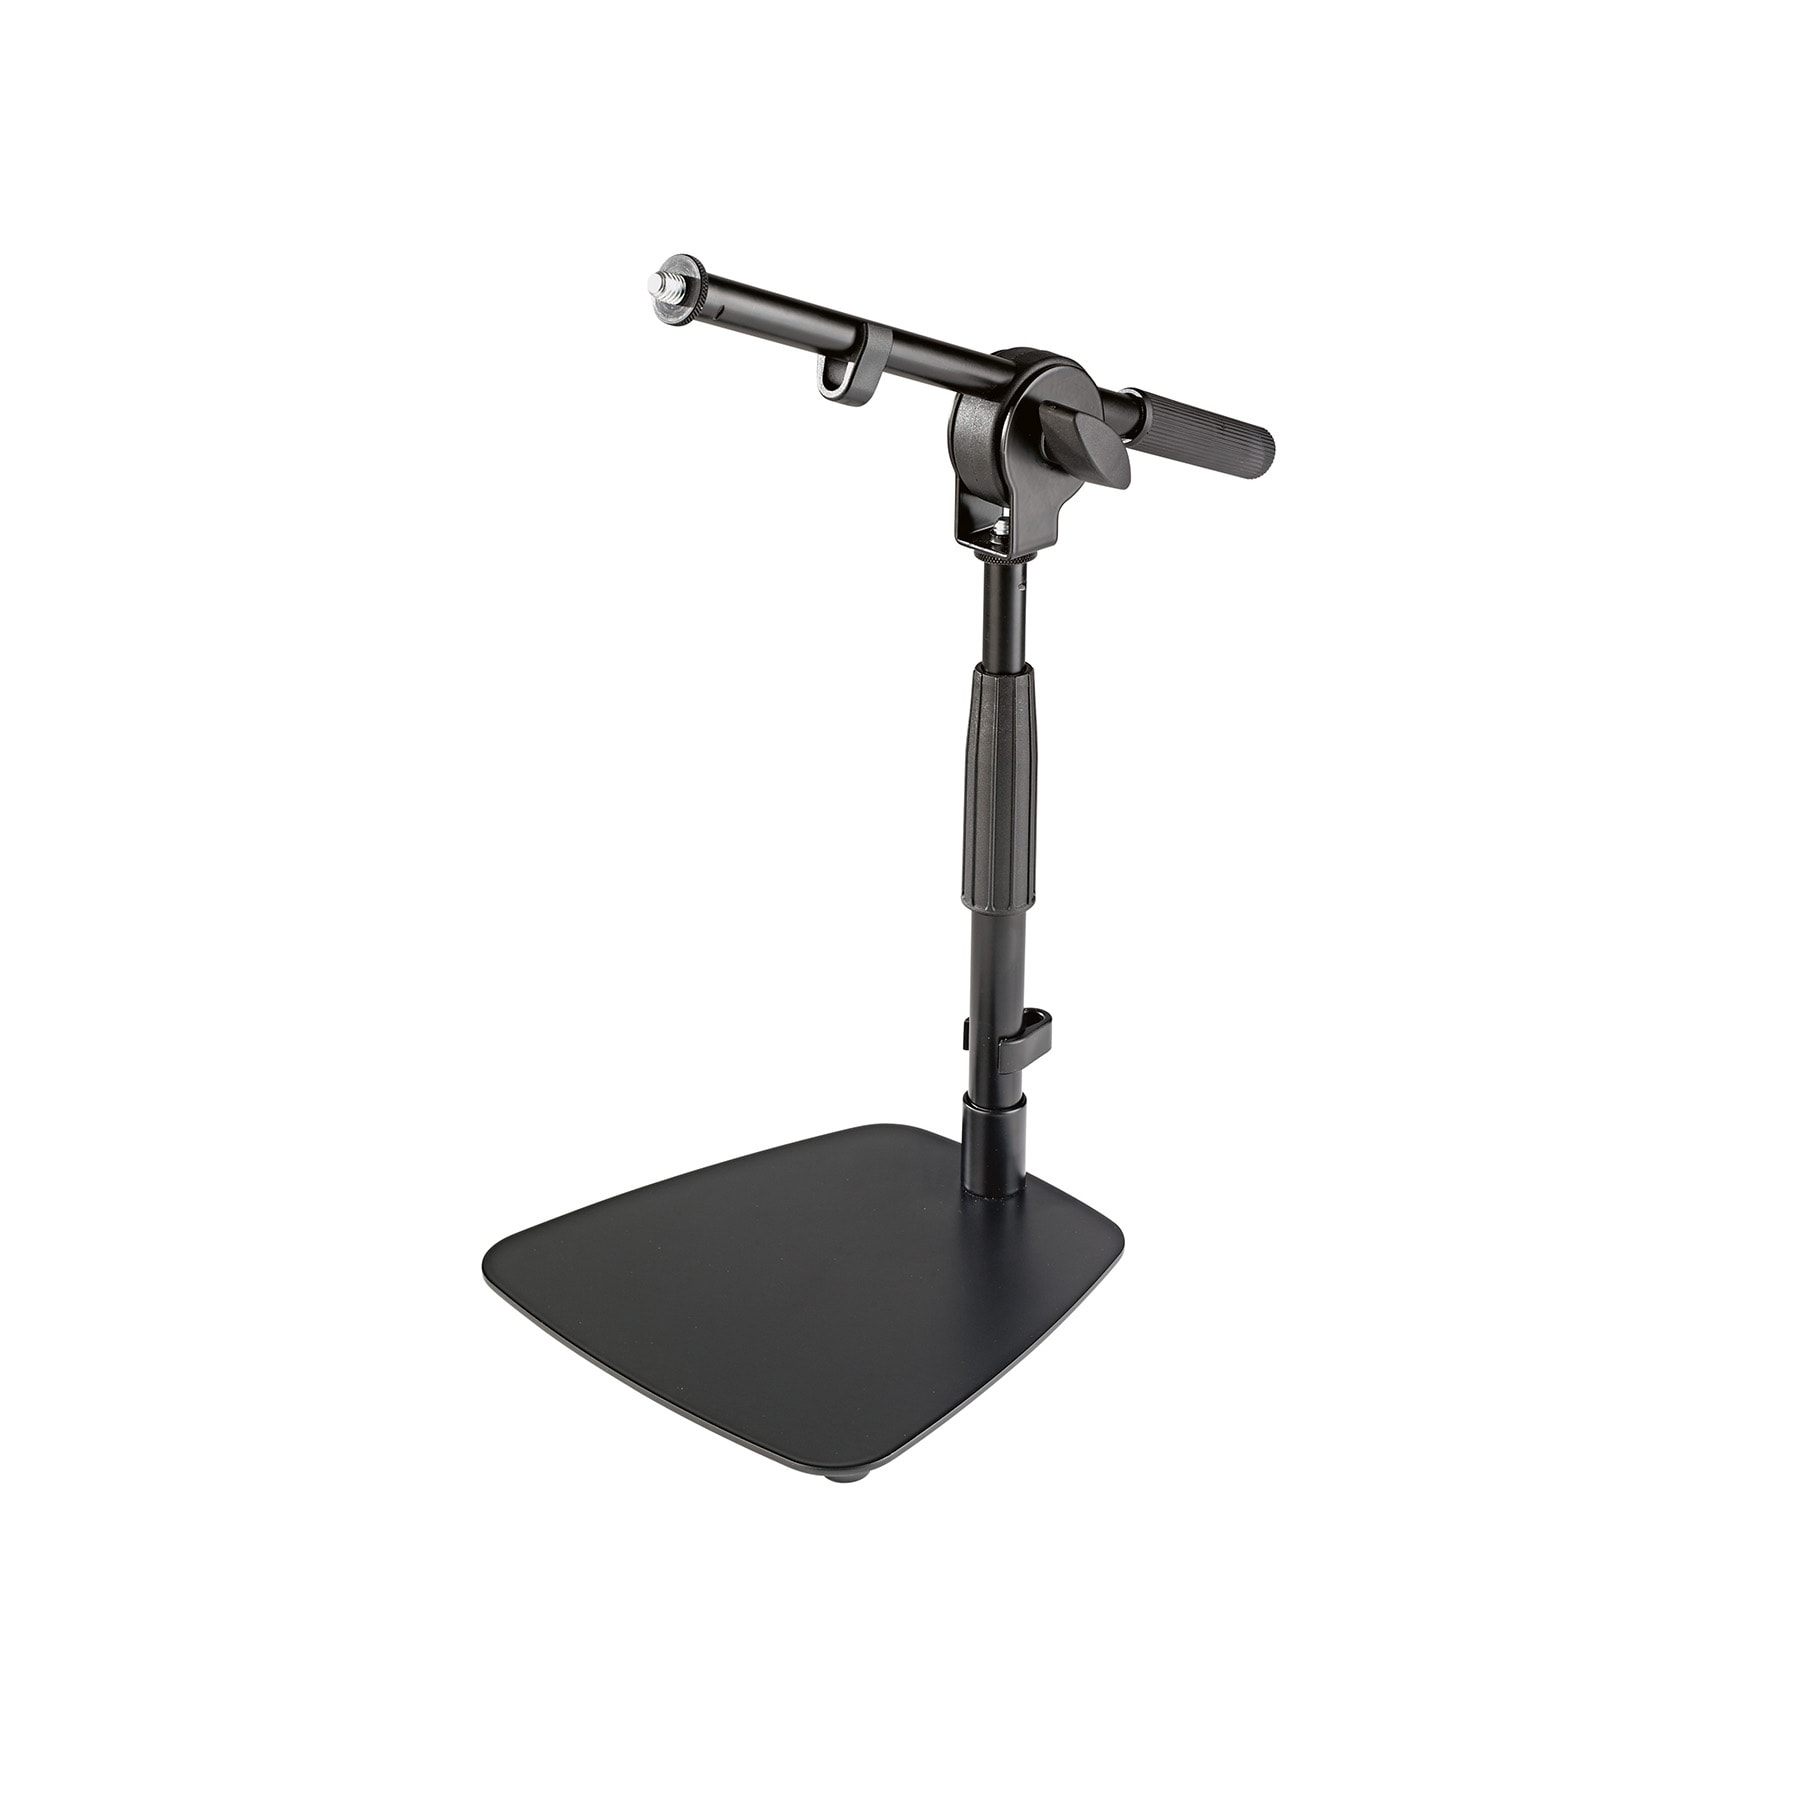 KM25995 - Table- /Floor microphone stand